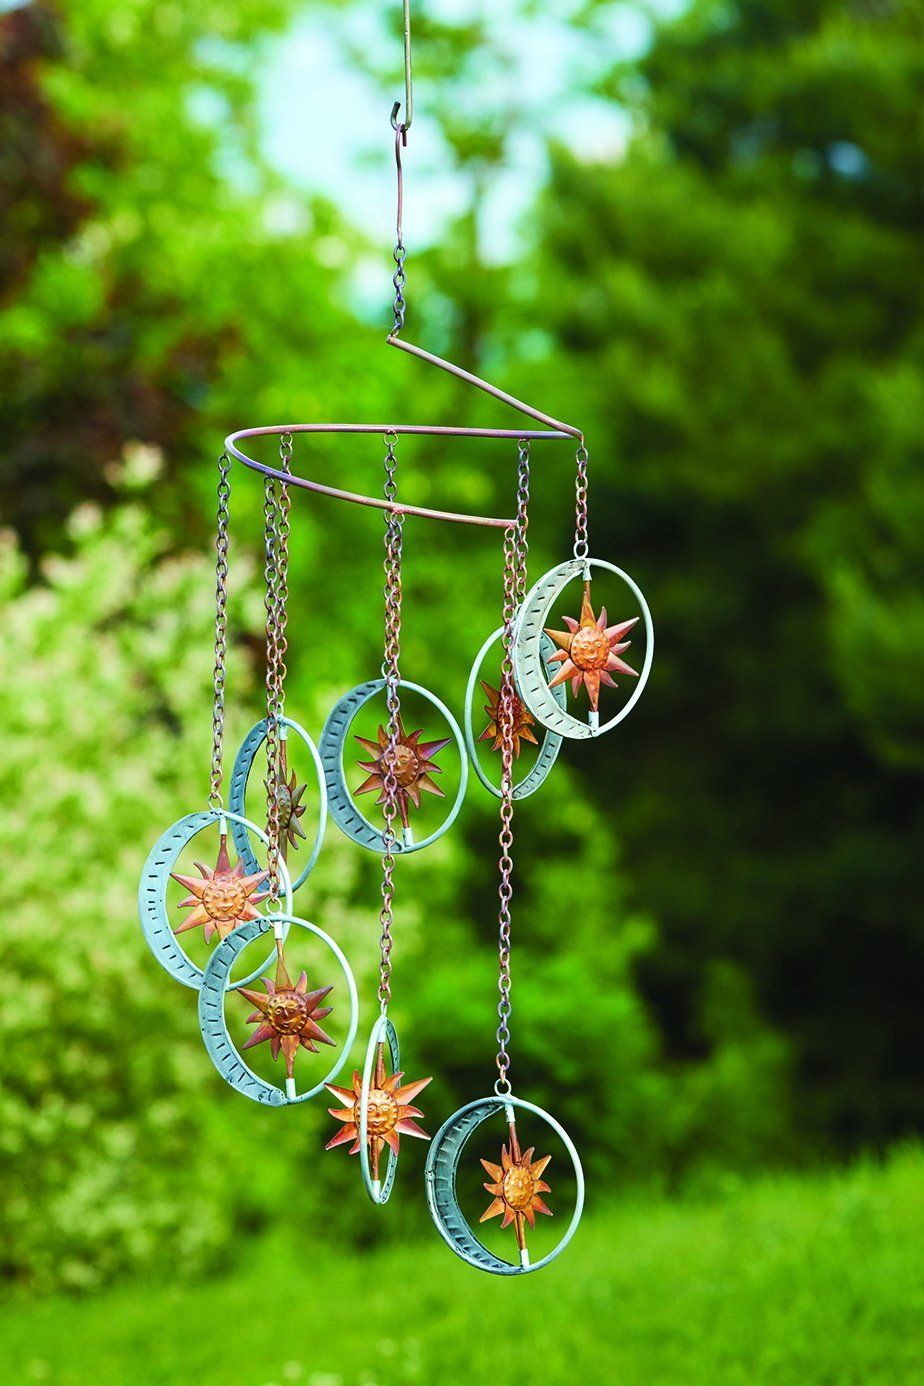 Hanging Sun and Moon Mobile Garden & Yard Mobiles & Wind